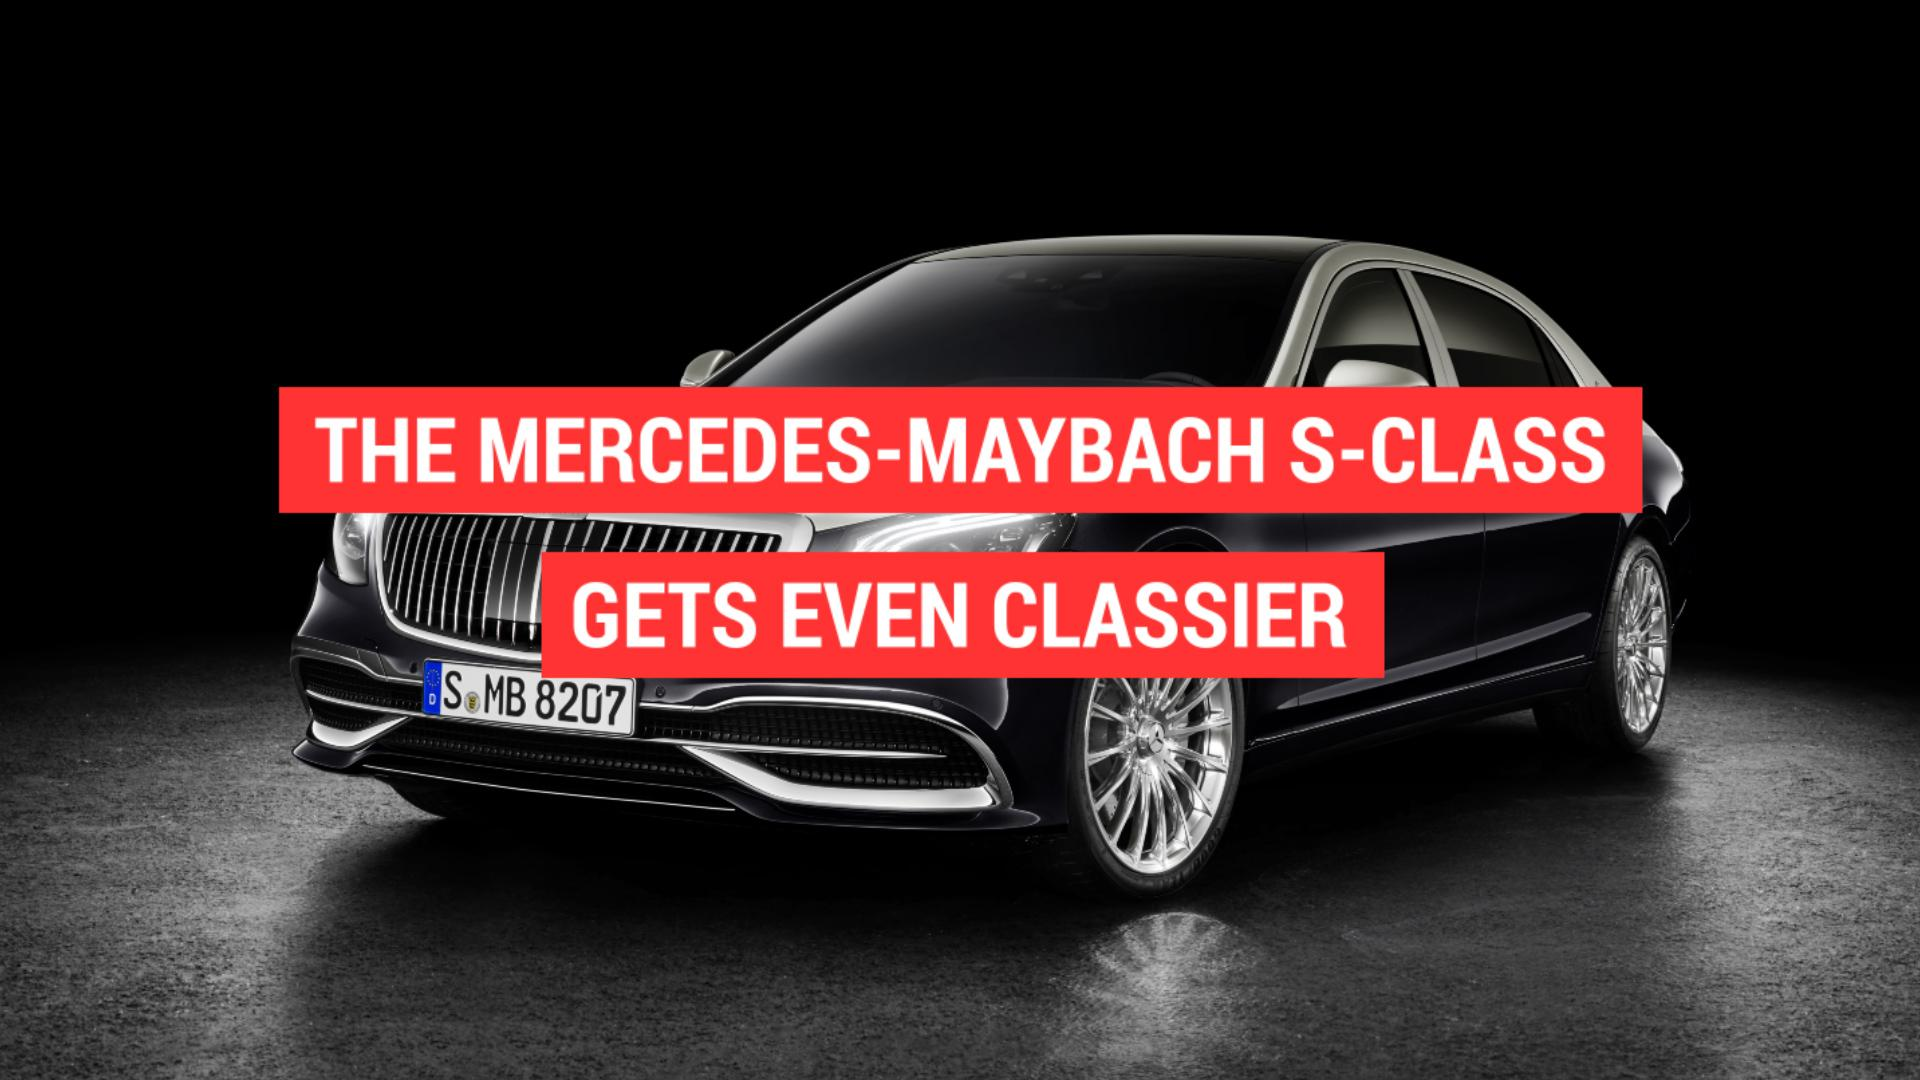 Mercedes-Benz leakages Vision Mercedes-Maybach Ultimate Deluxe principle photos online